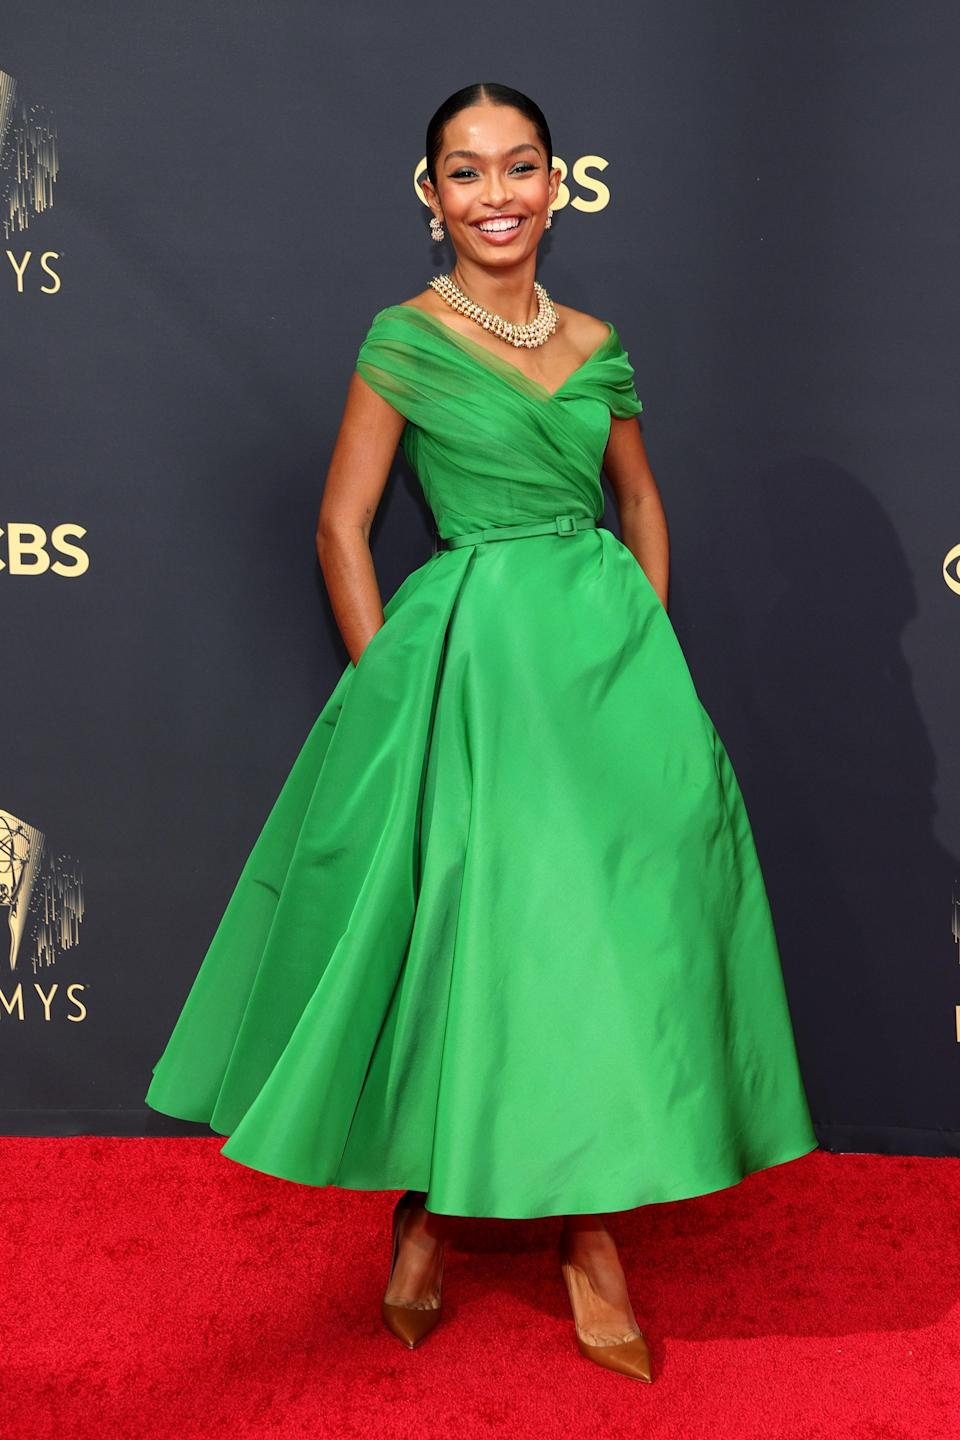 So pretty! Yara chose a bright green, '50s-inspired Dior for her red carpet look and added a bold necklace, matching earrings, and neutral pumps.